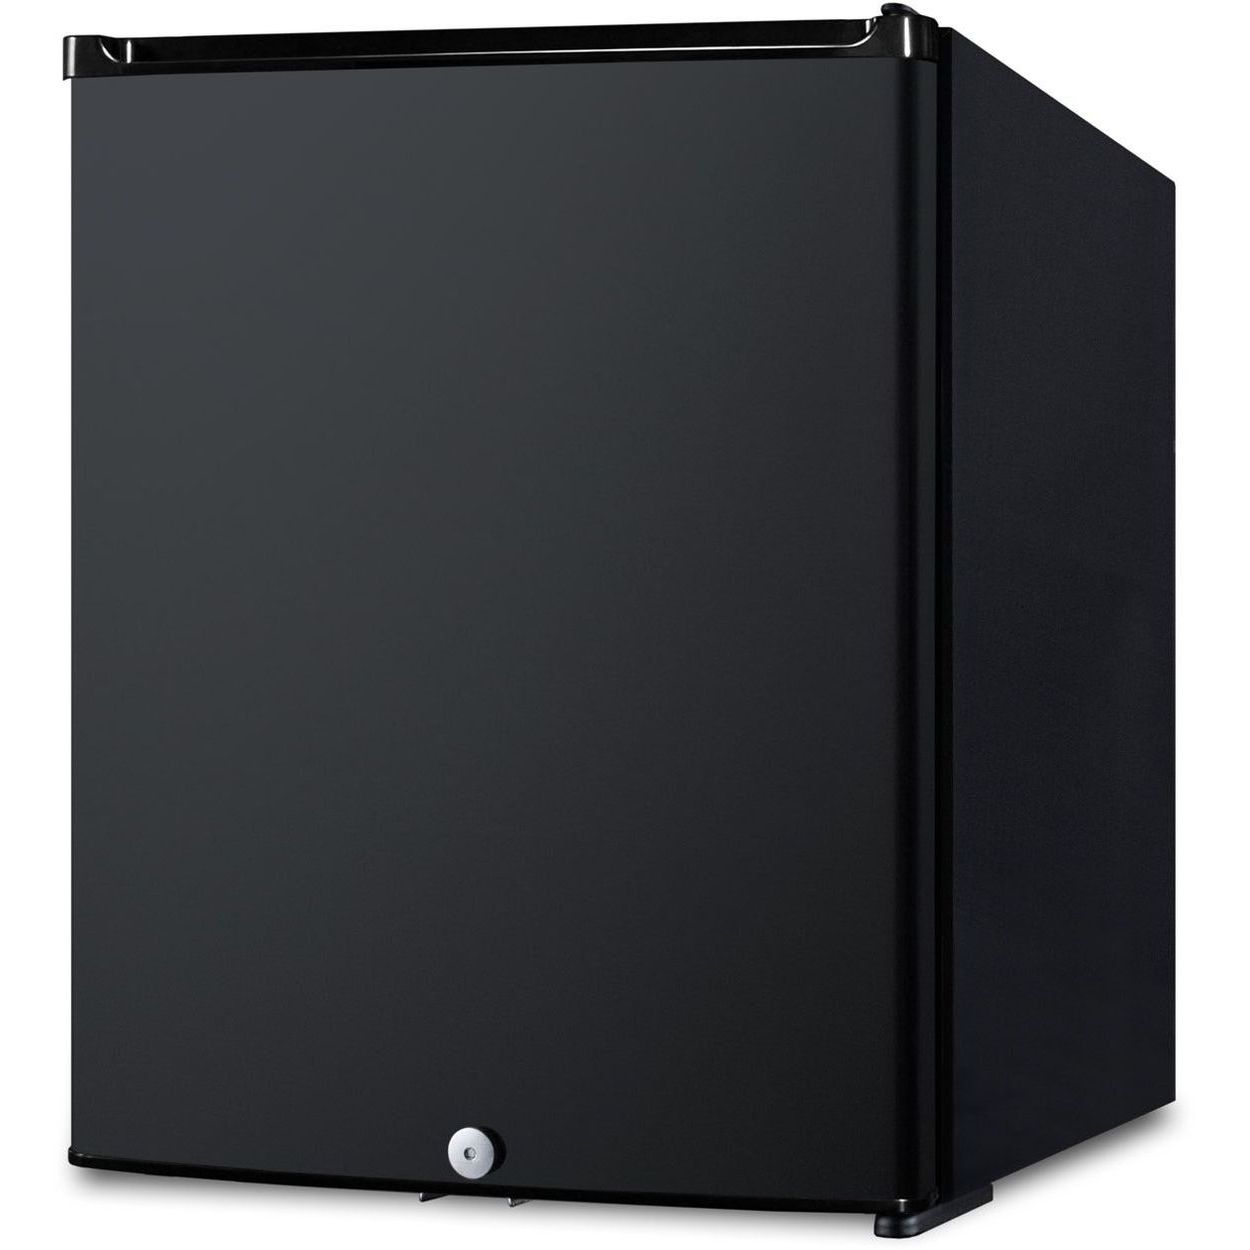 Summit MB12B 0.7 Cu Ft Black Compact Minibar - Black Door